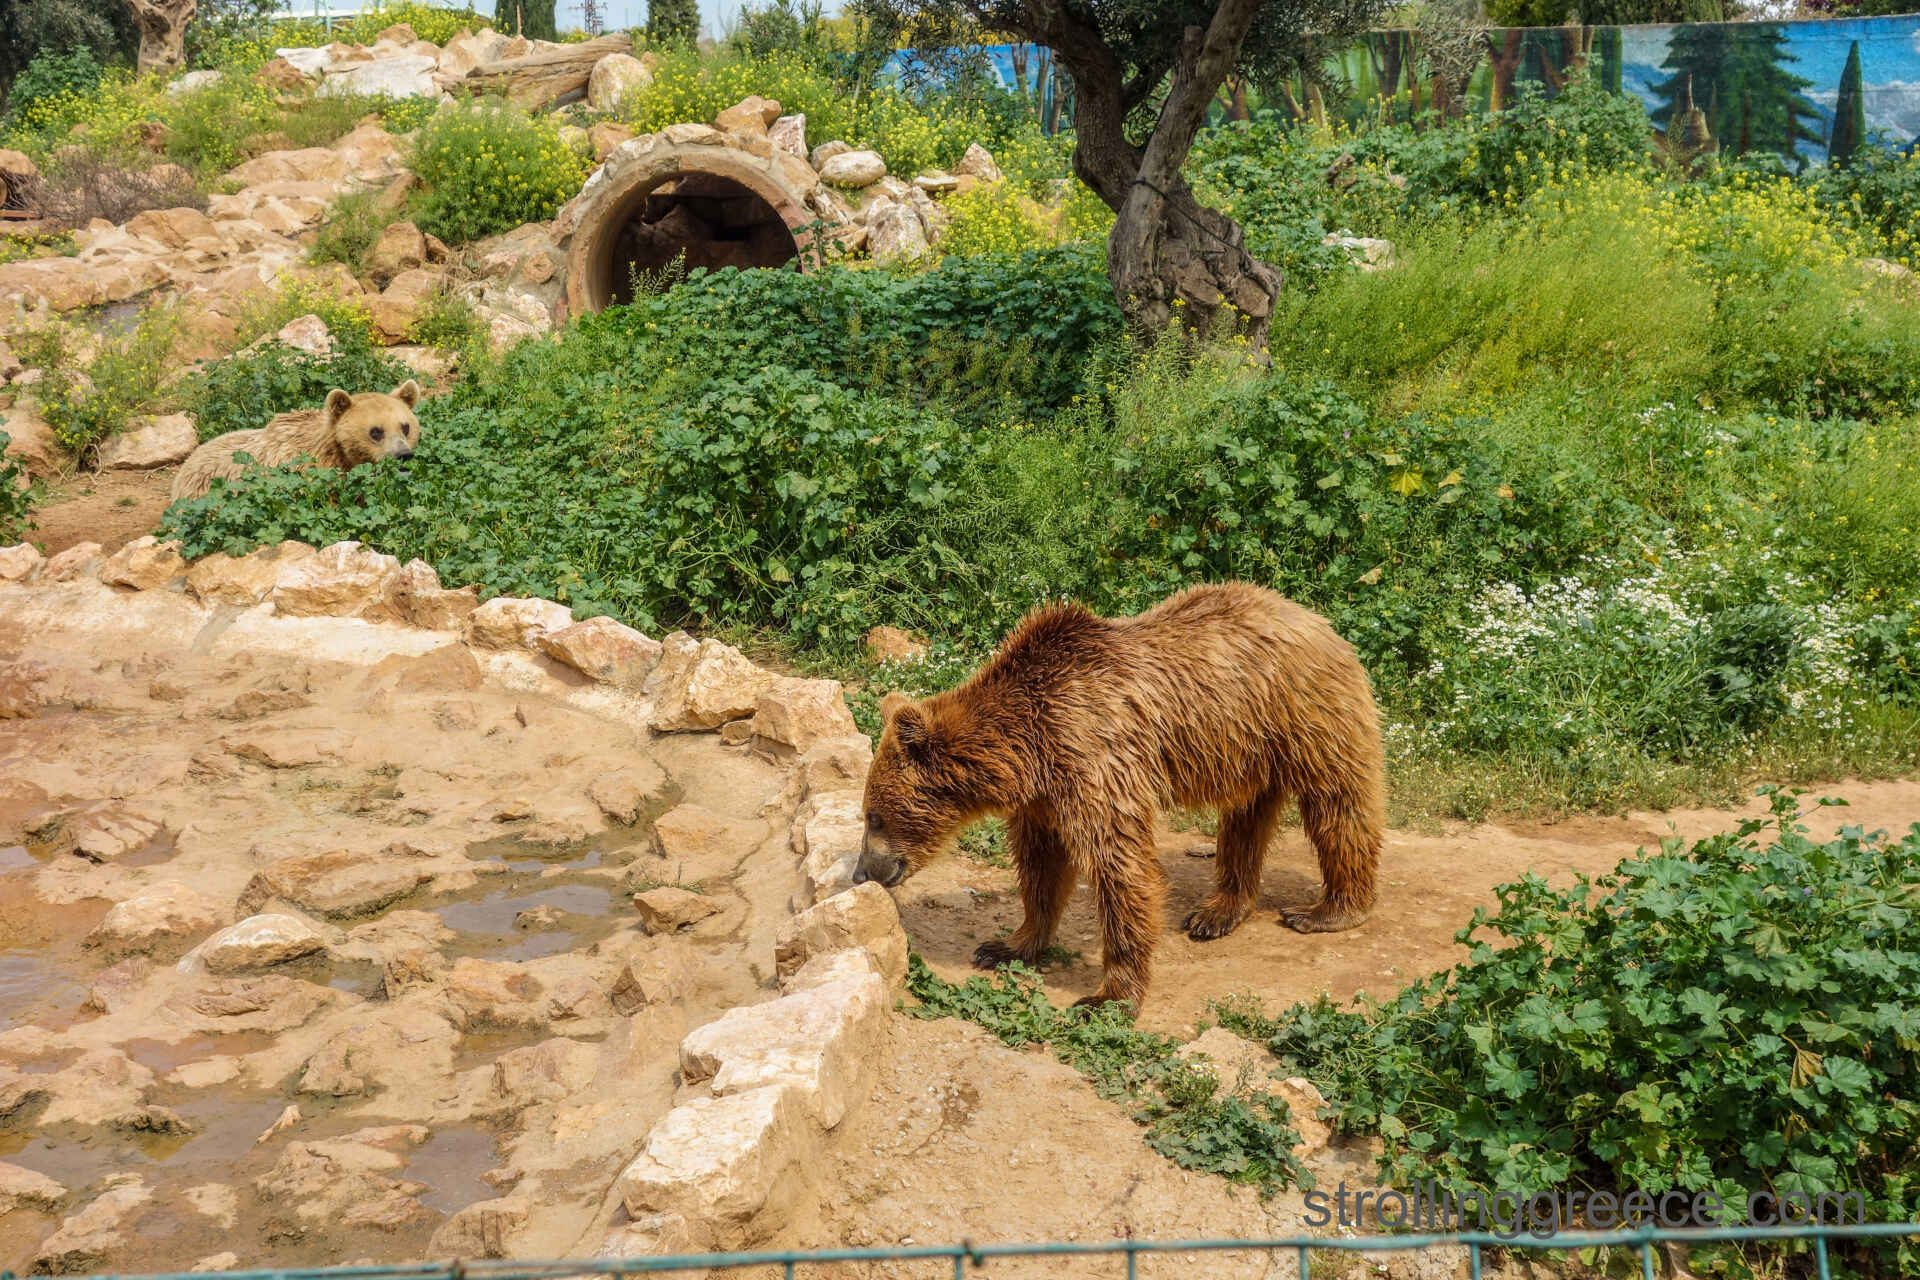 Attica zoo park, the brown bears